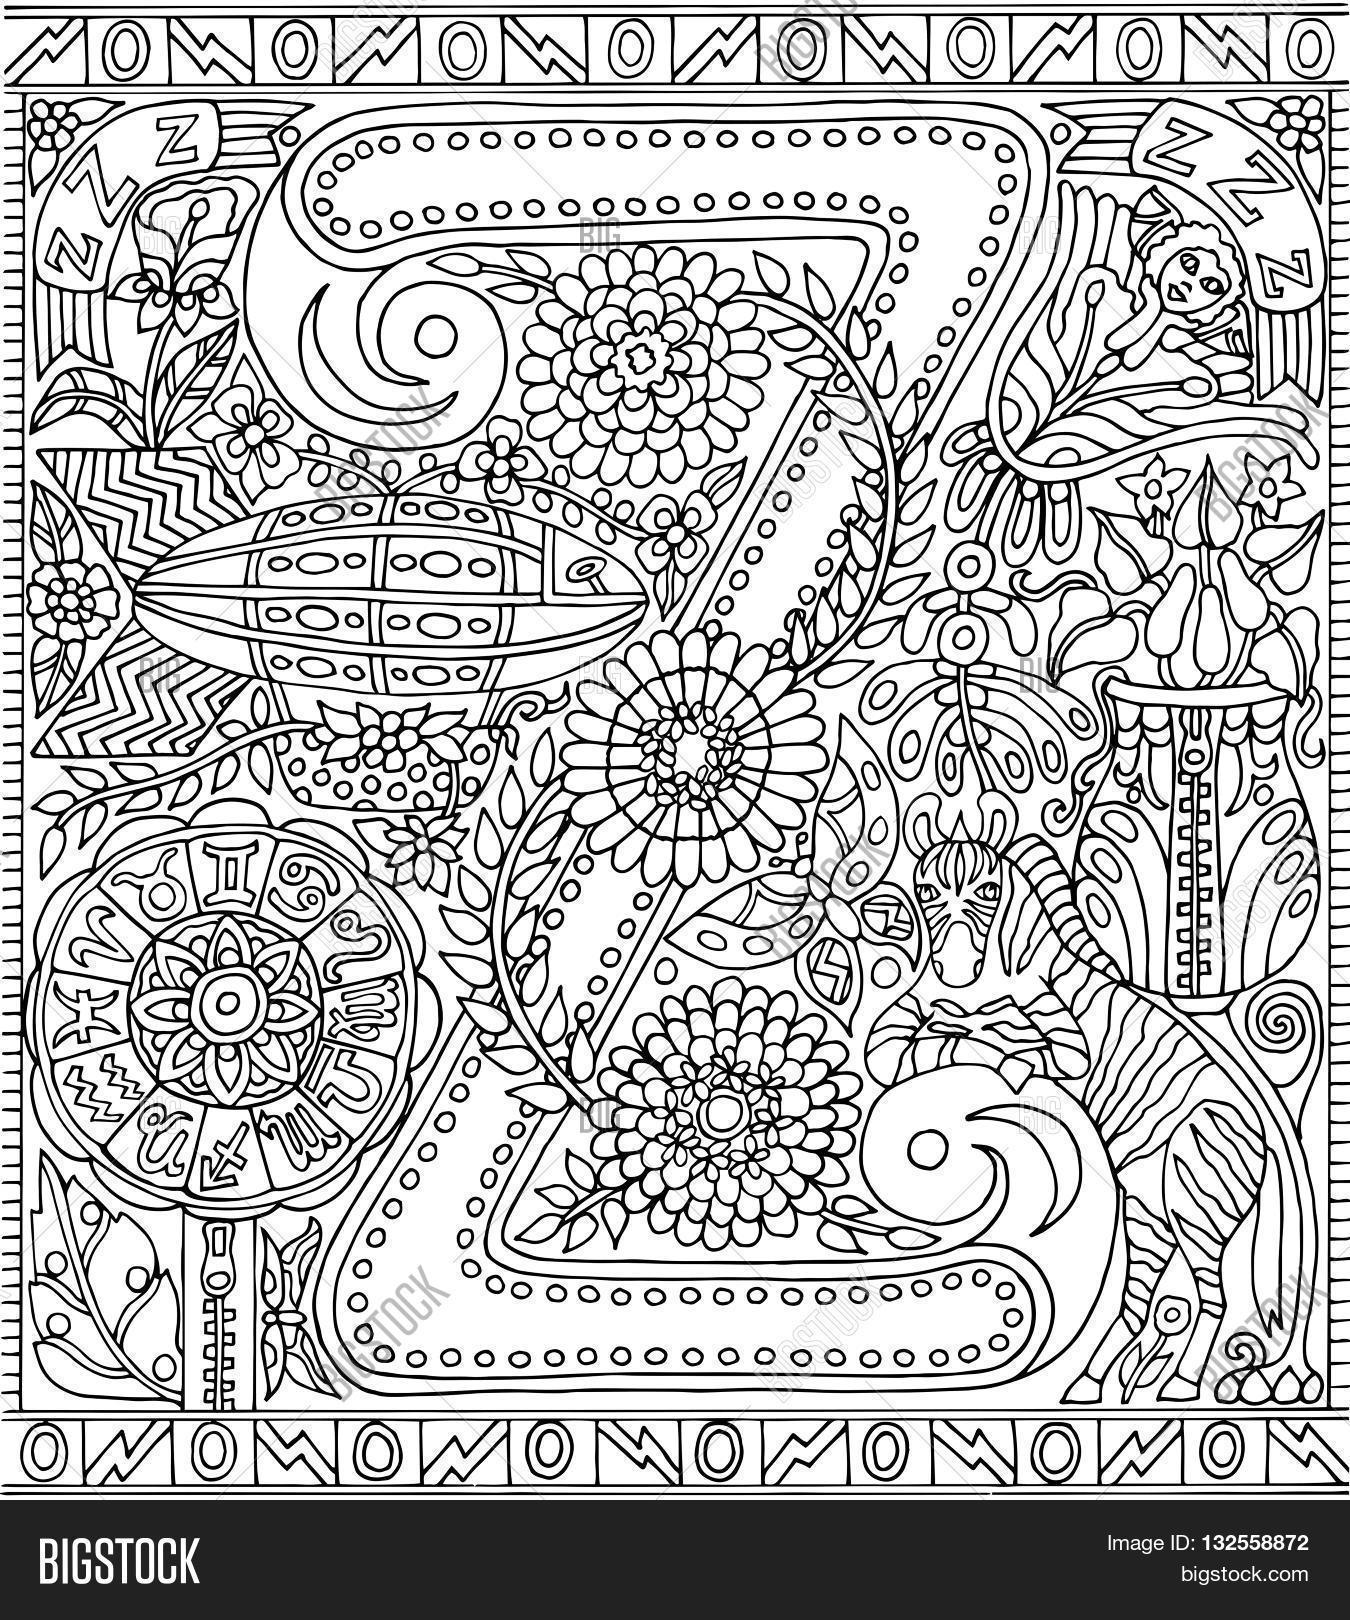 The coloring book poster - Adult Coloring Book Poster Alphabet Letter Z Black And White Vector Illustration